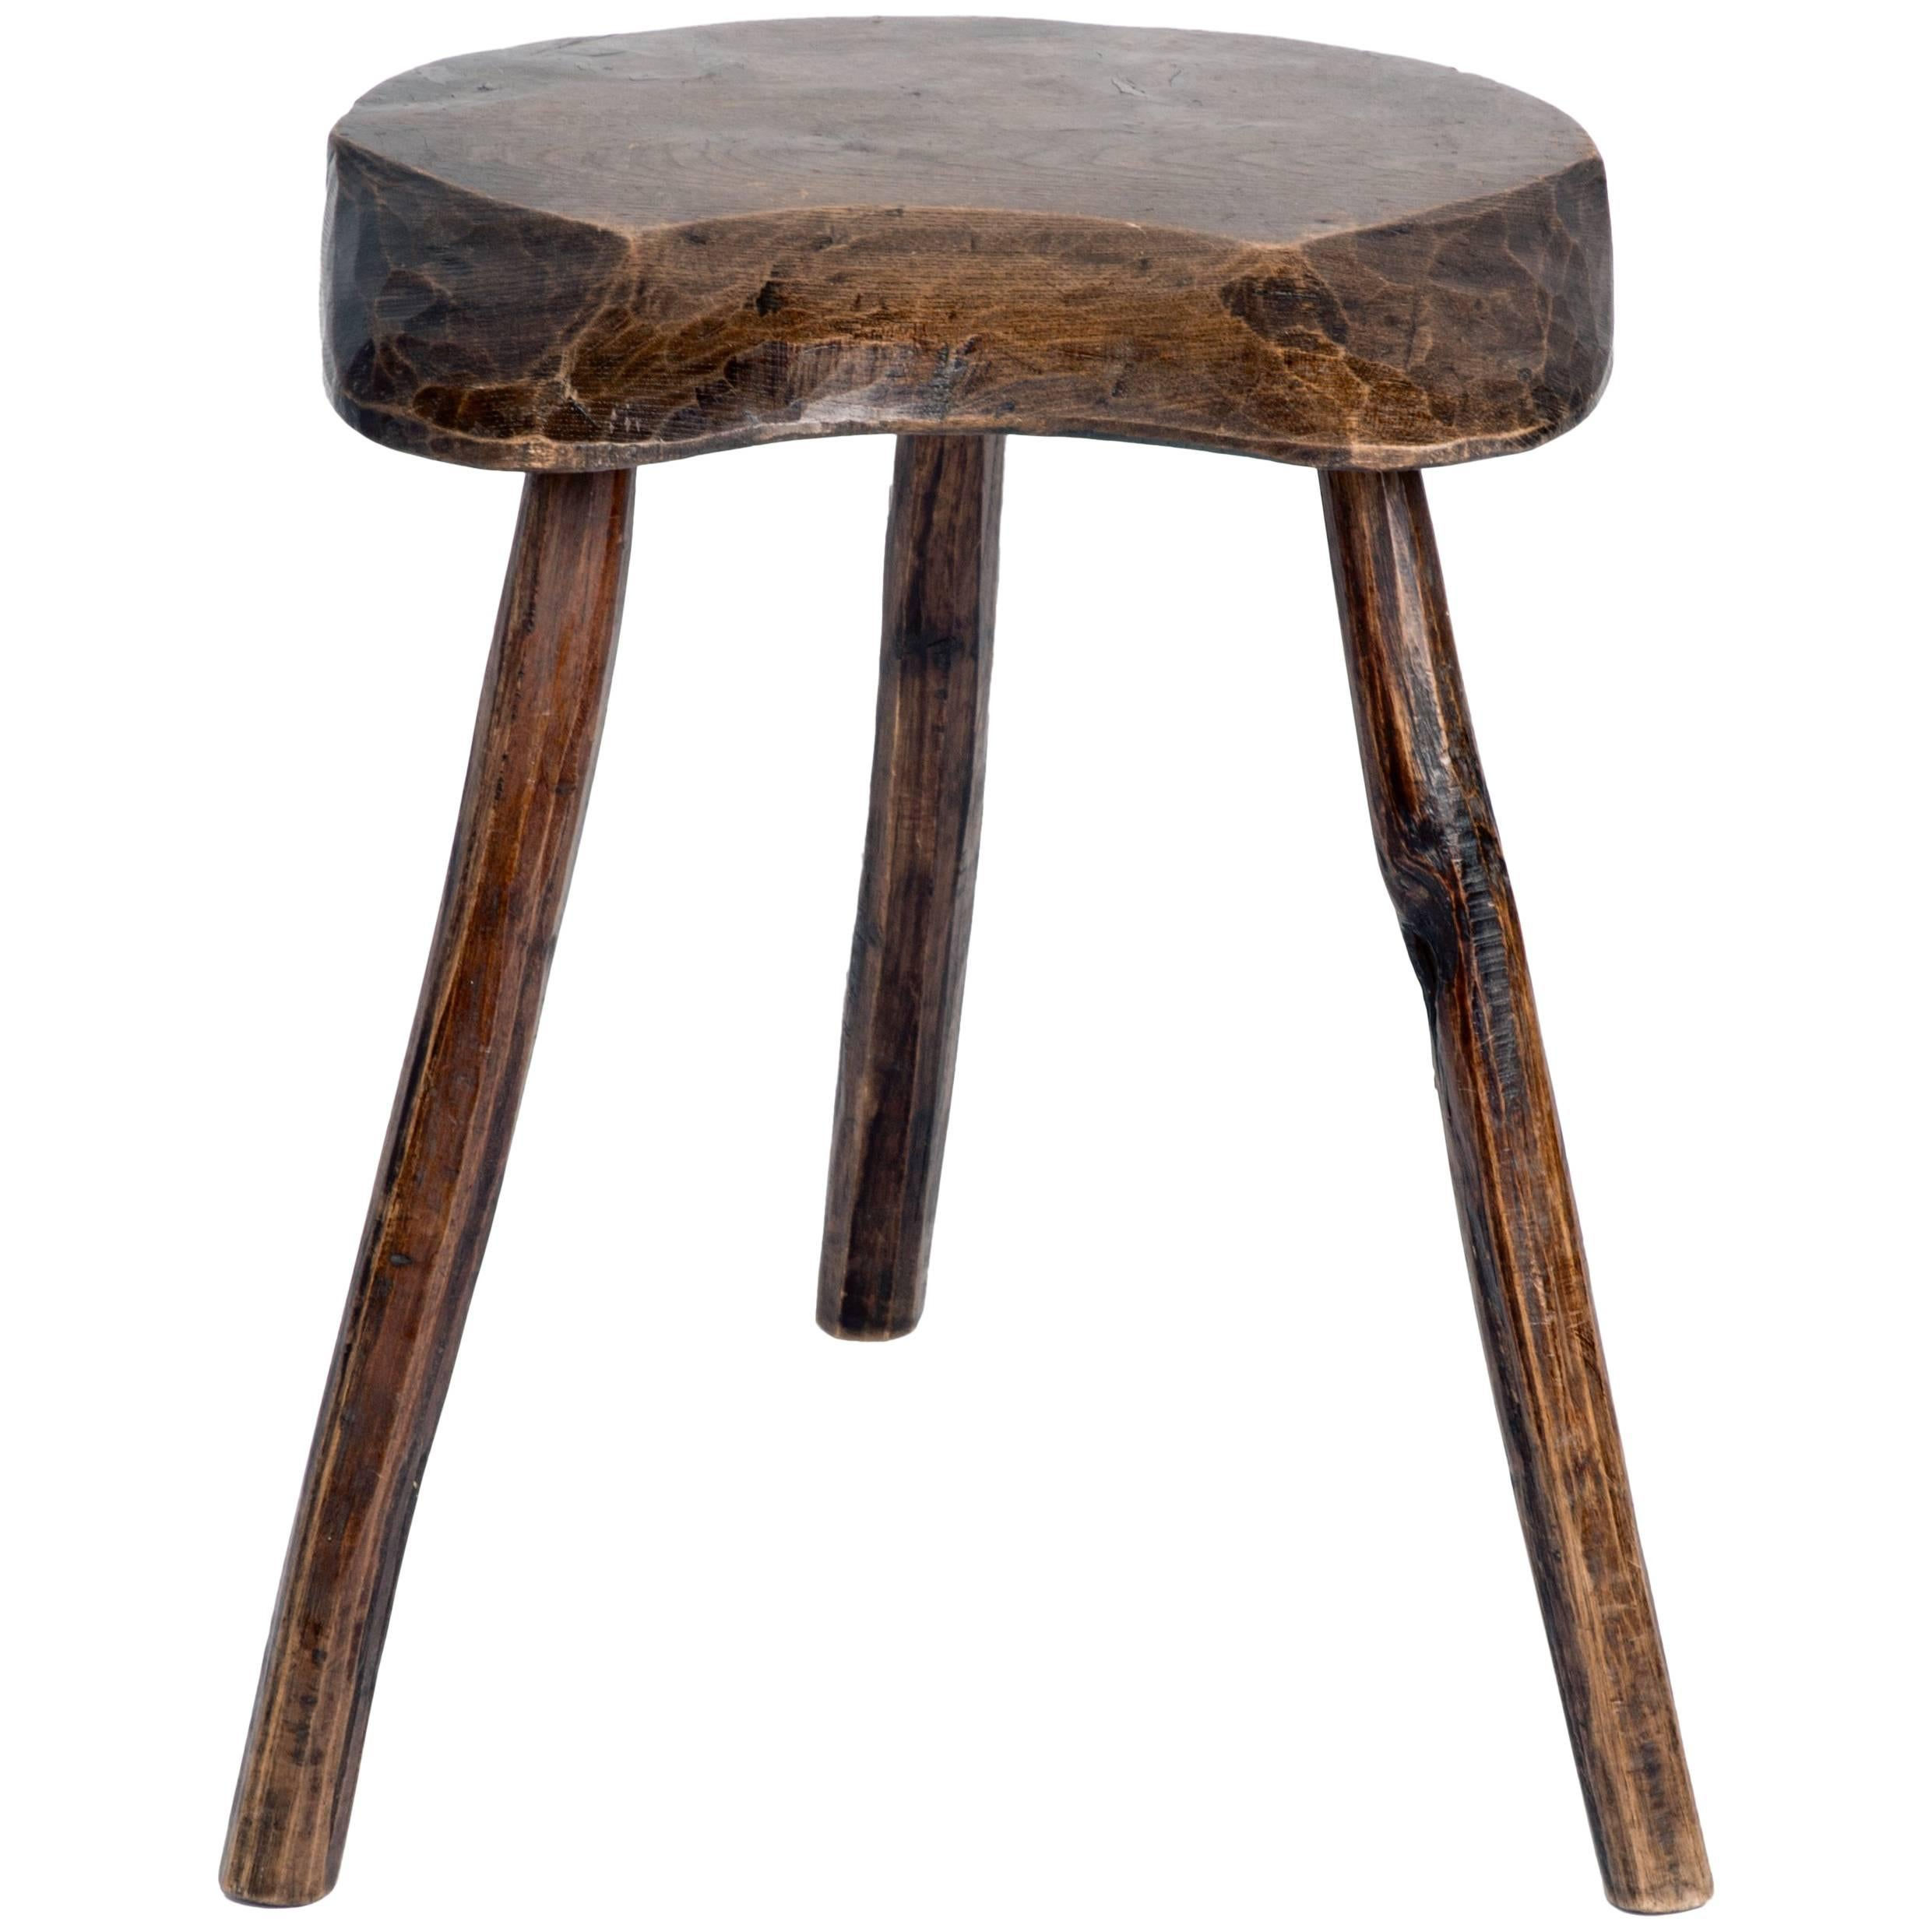 Vintage French Wooden Stool 1  sc 1 st  1stDibs & Vintage French Wooden Stool For Sale at 1stdibs islam-shia.org